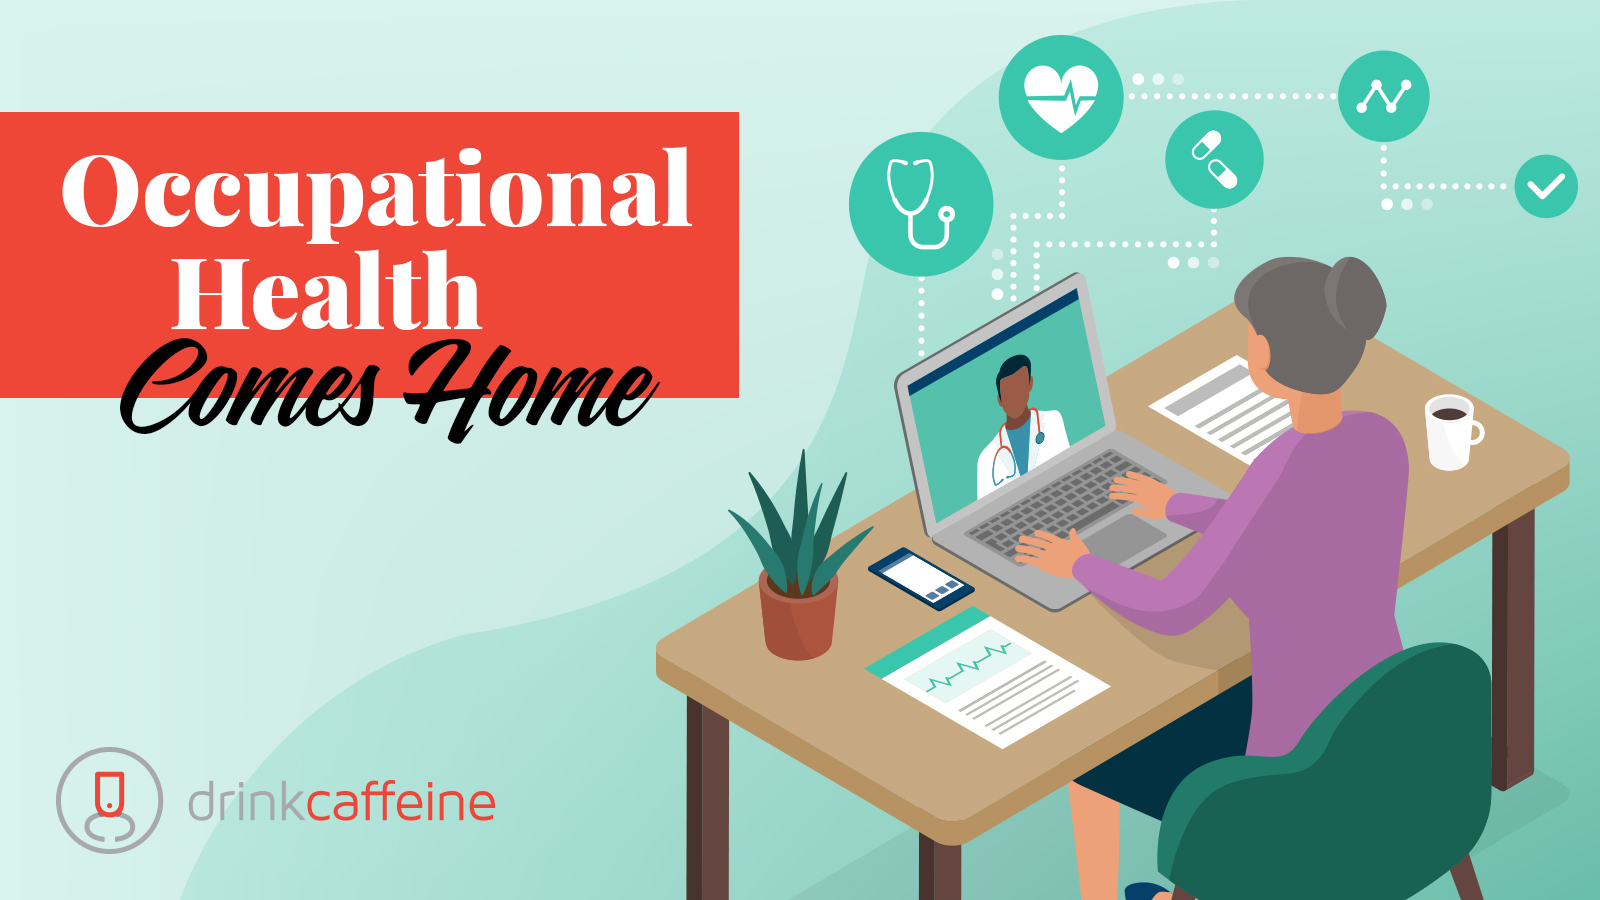 As people work remotely, the demand for a new kind of occupational healthcare will rise blog image